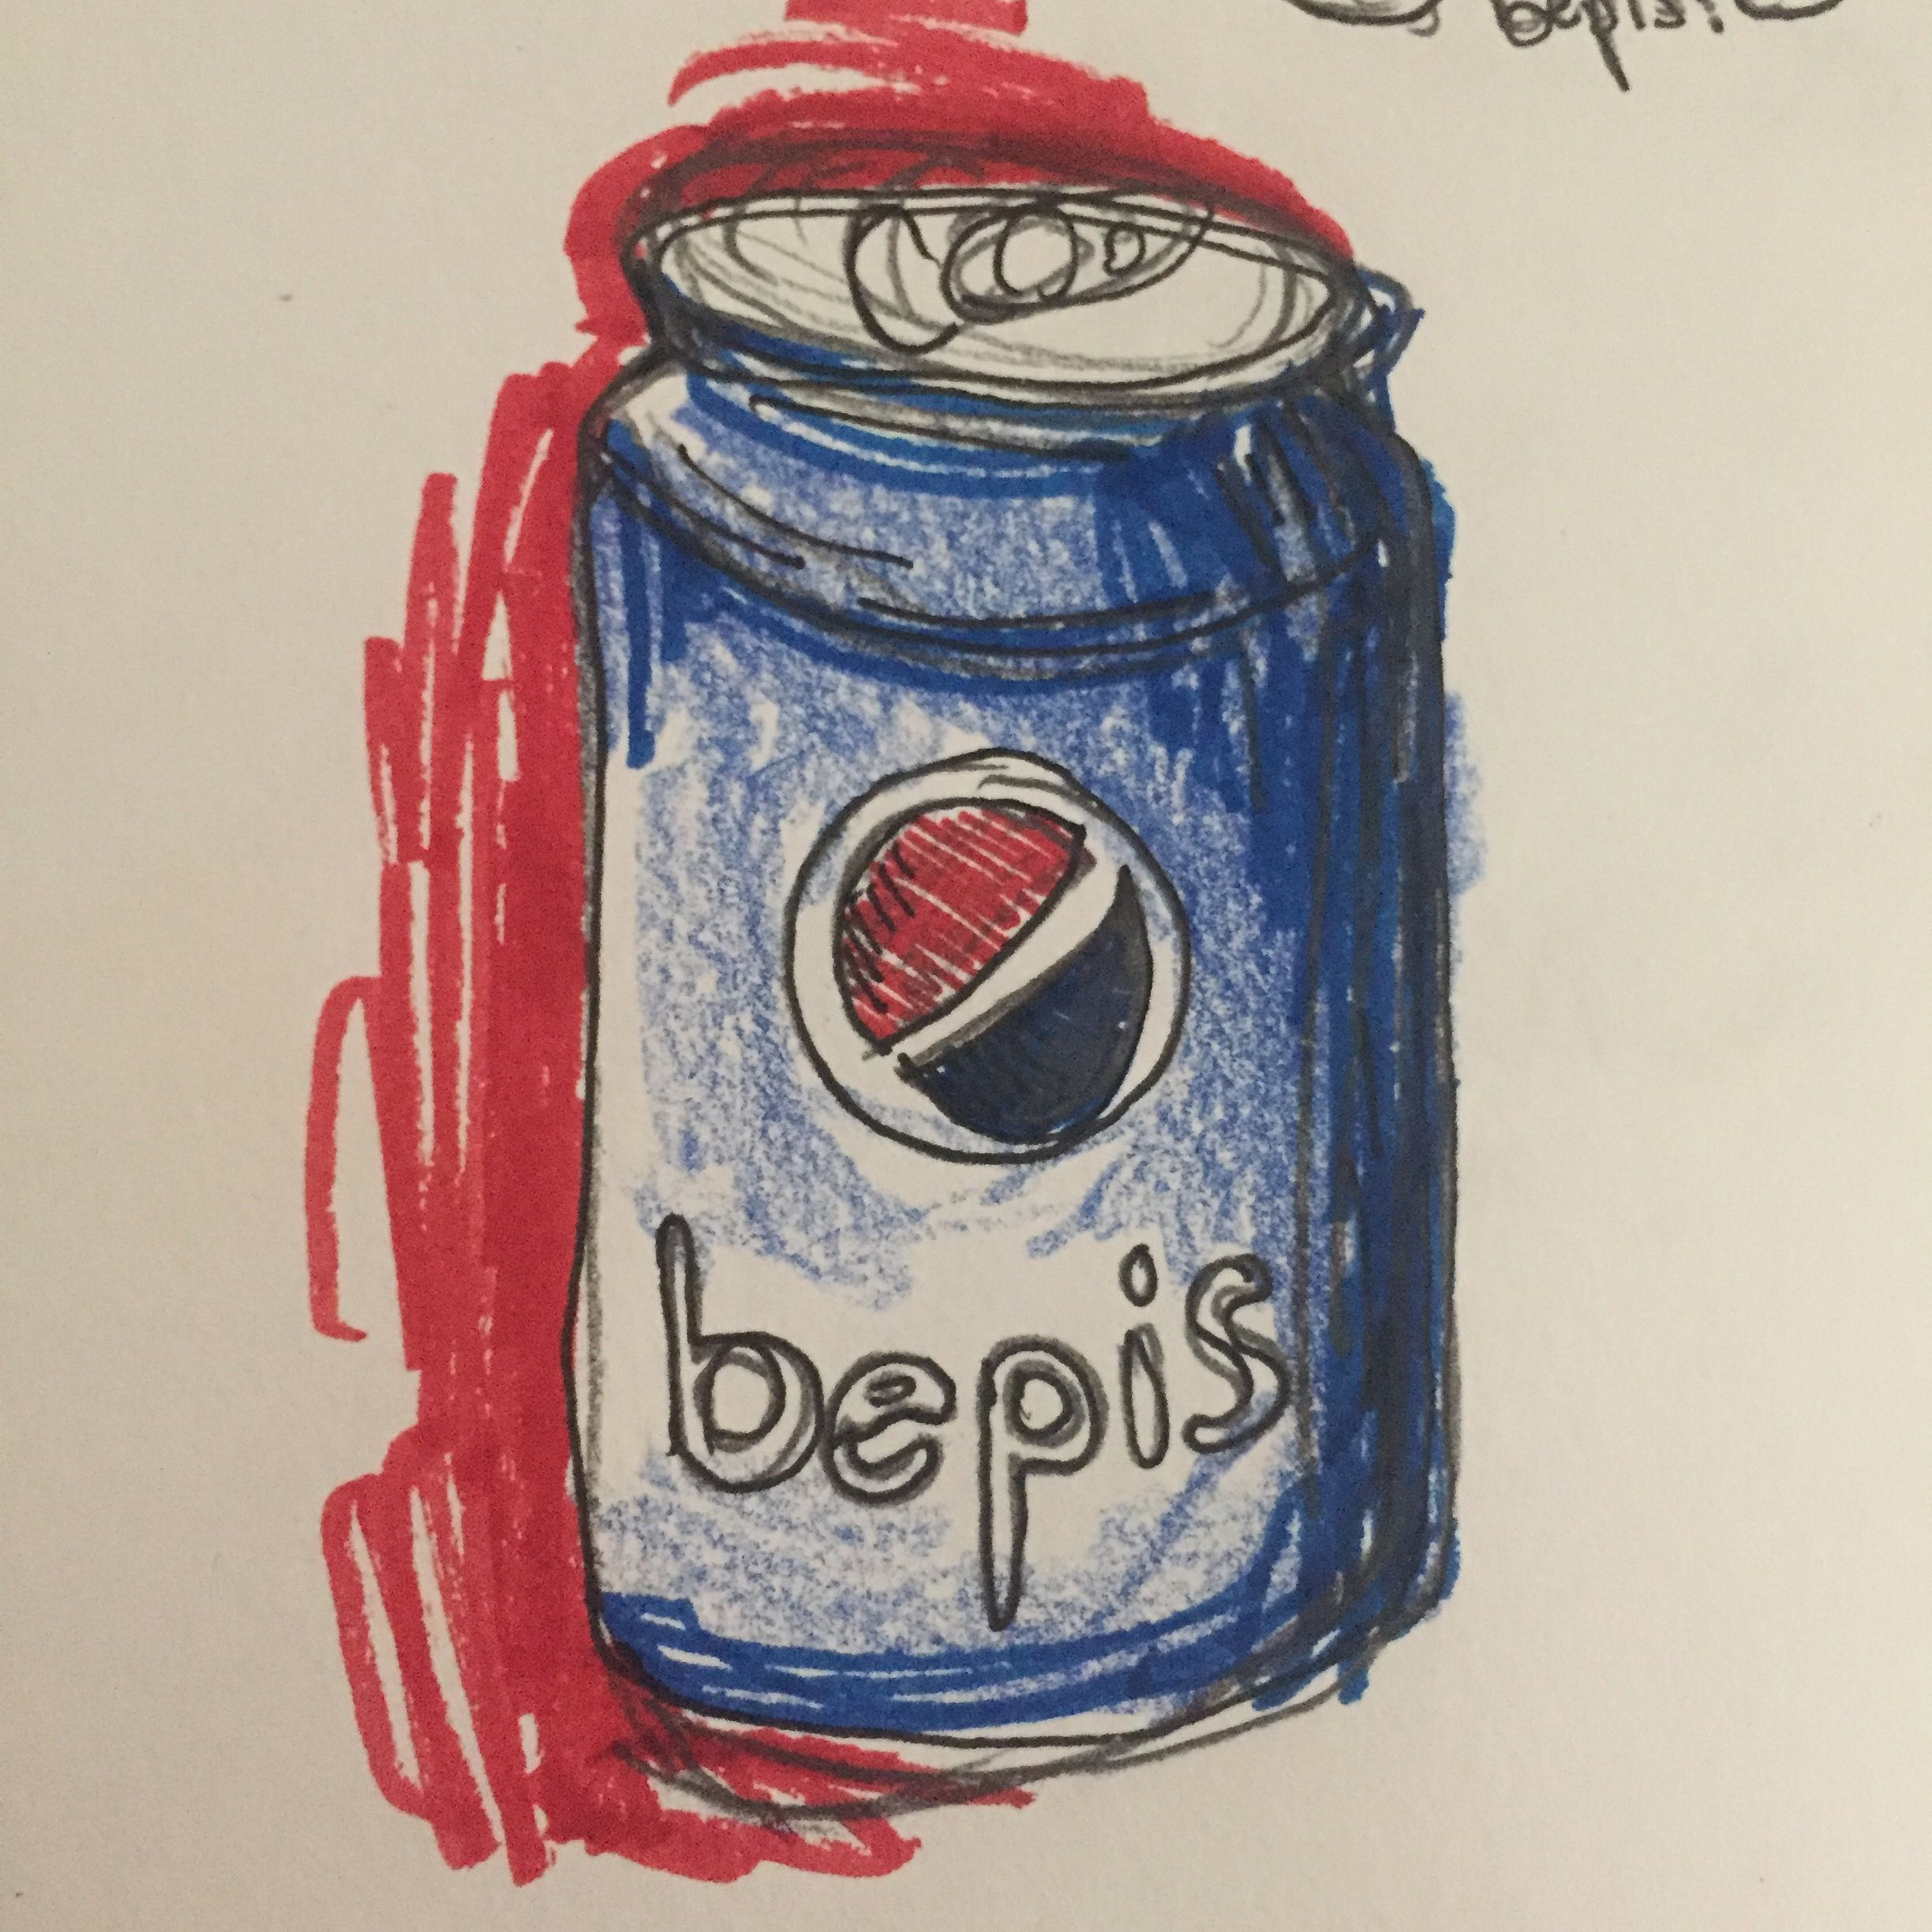 16+ Bepis can information